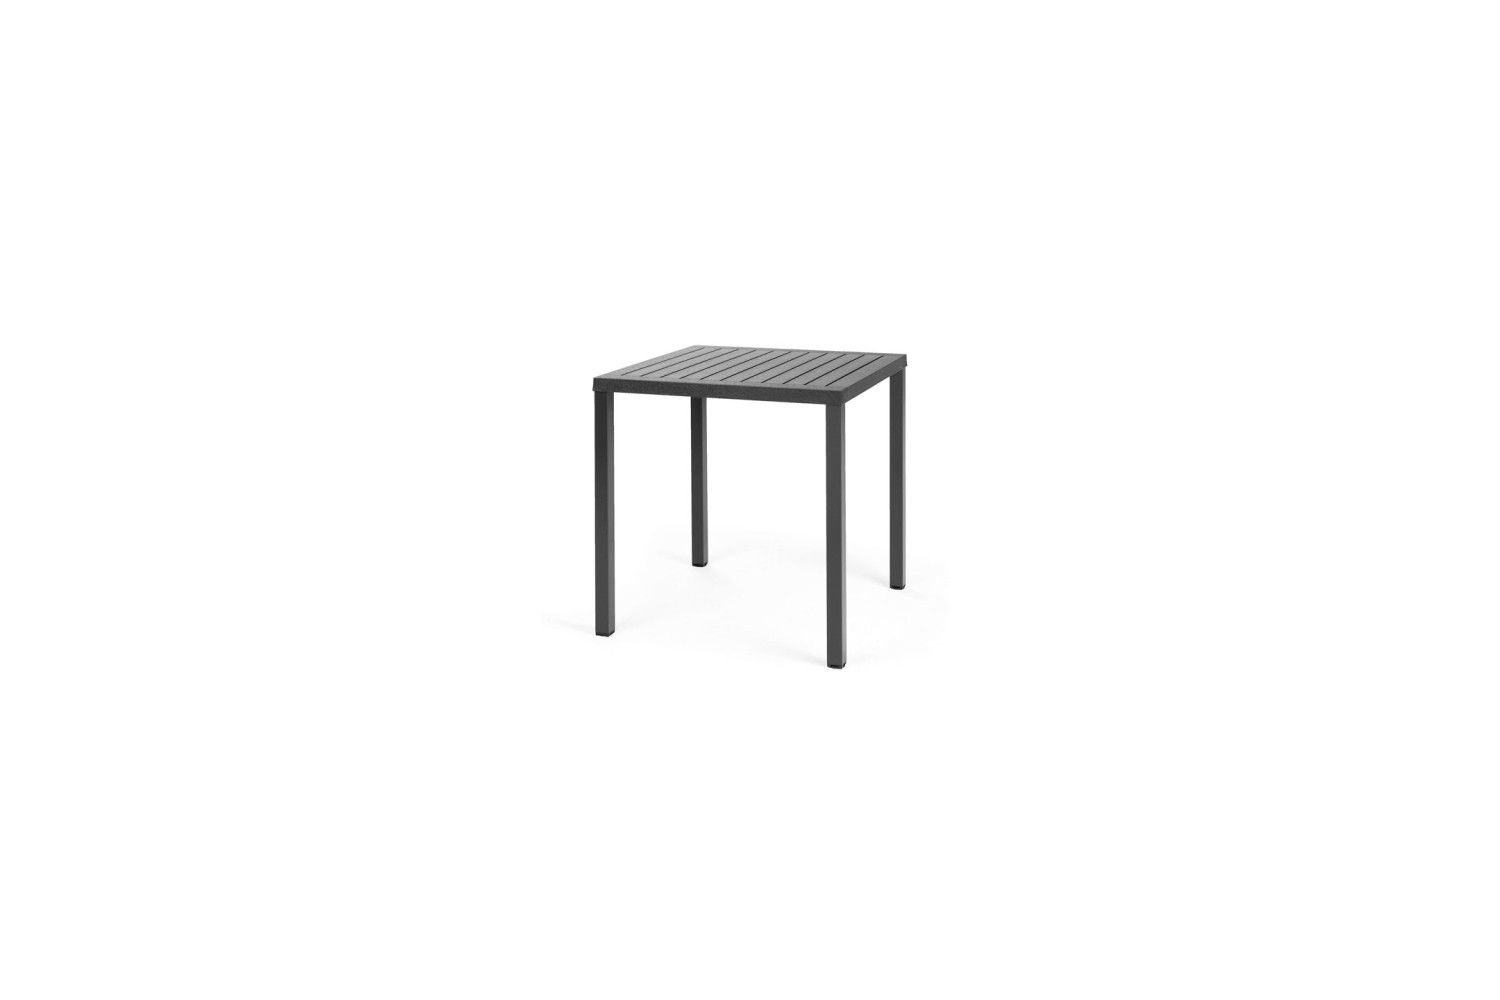 Cube cafebord 70x70